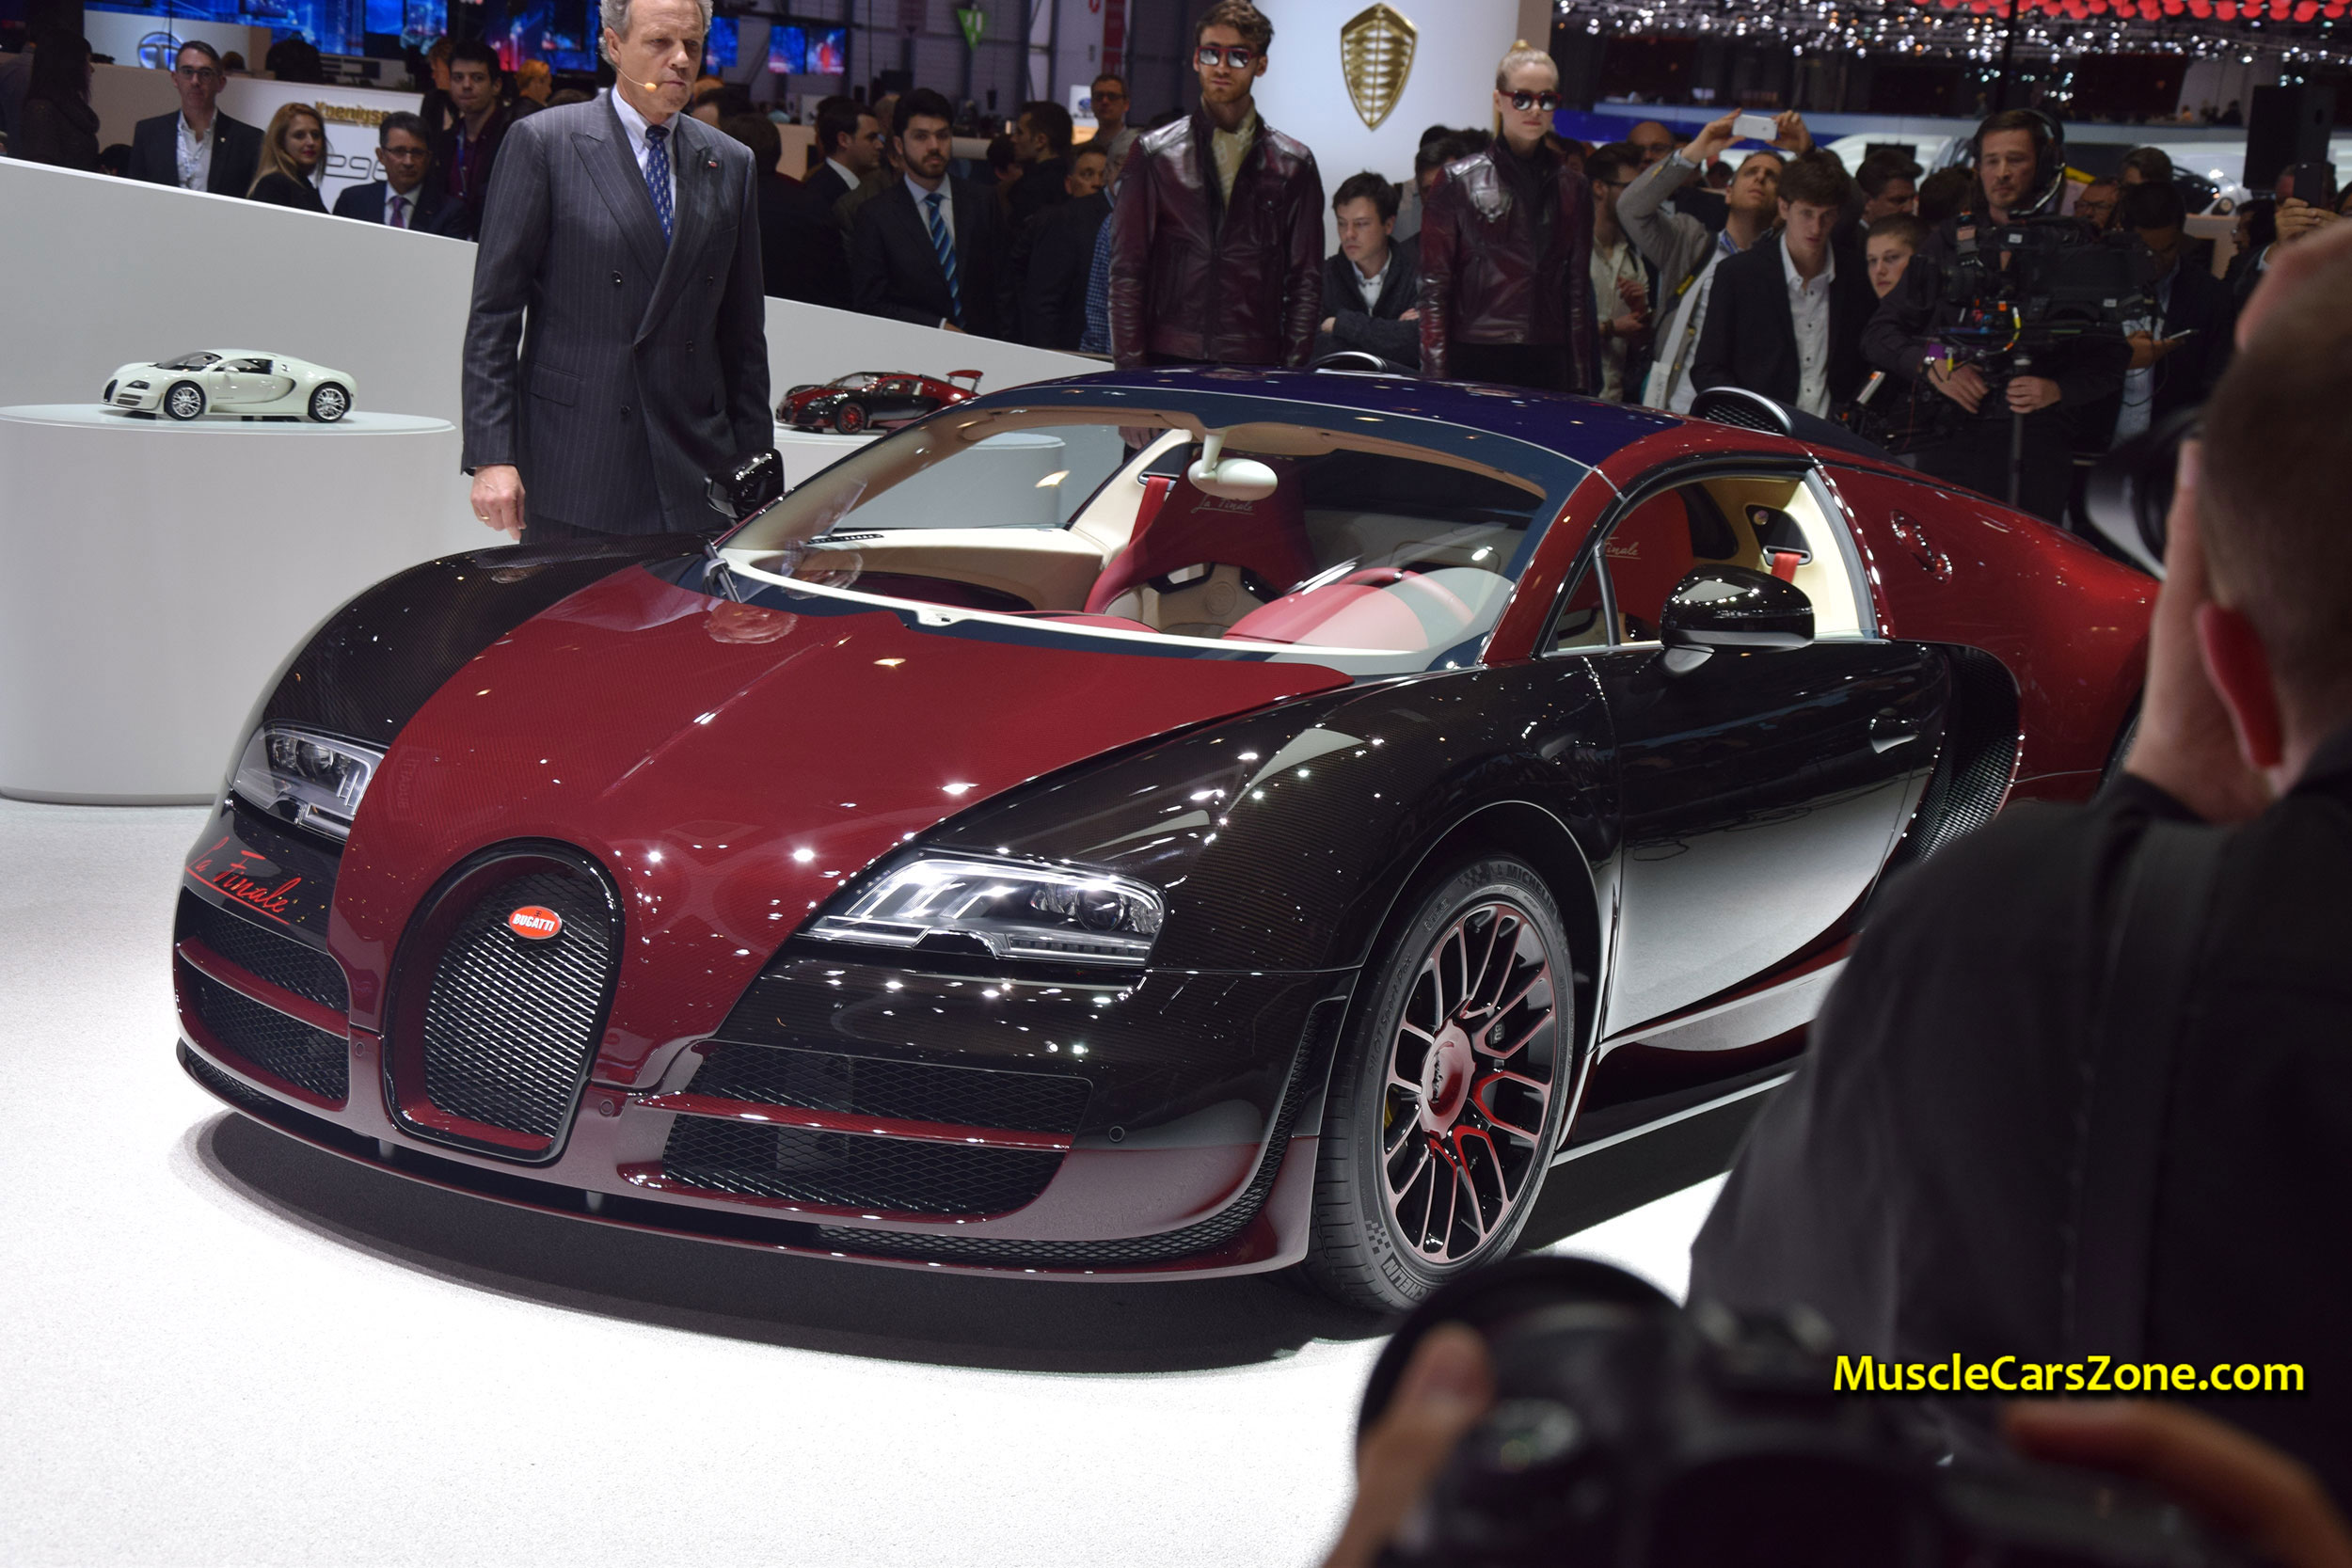 2015-Bugatti-Press-Conference-The-1st-the-450th-Bugatti-Veyron-08-2015-Geneva-Motor-Show.JPG Gorgeous Bugatti Veyron Grand Sport Vitesse Drag Race Cars Trend